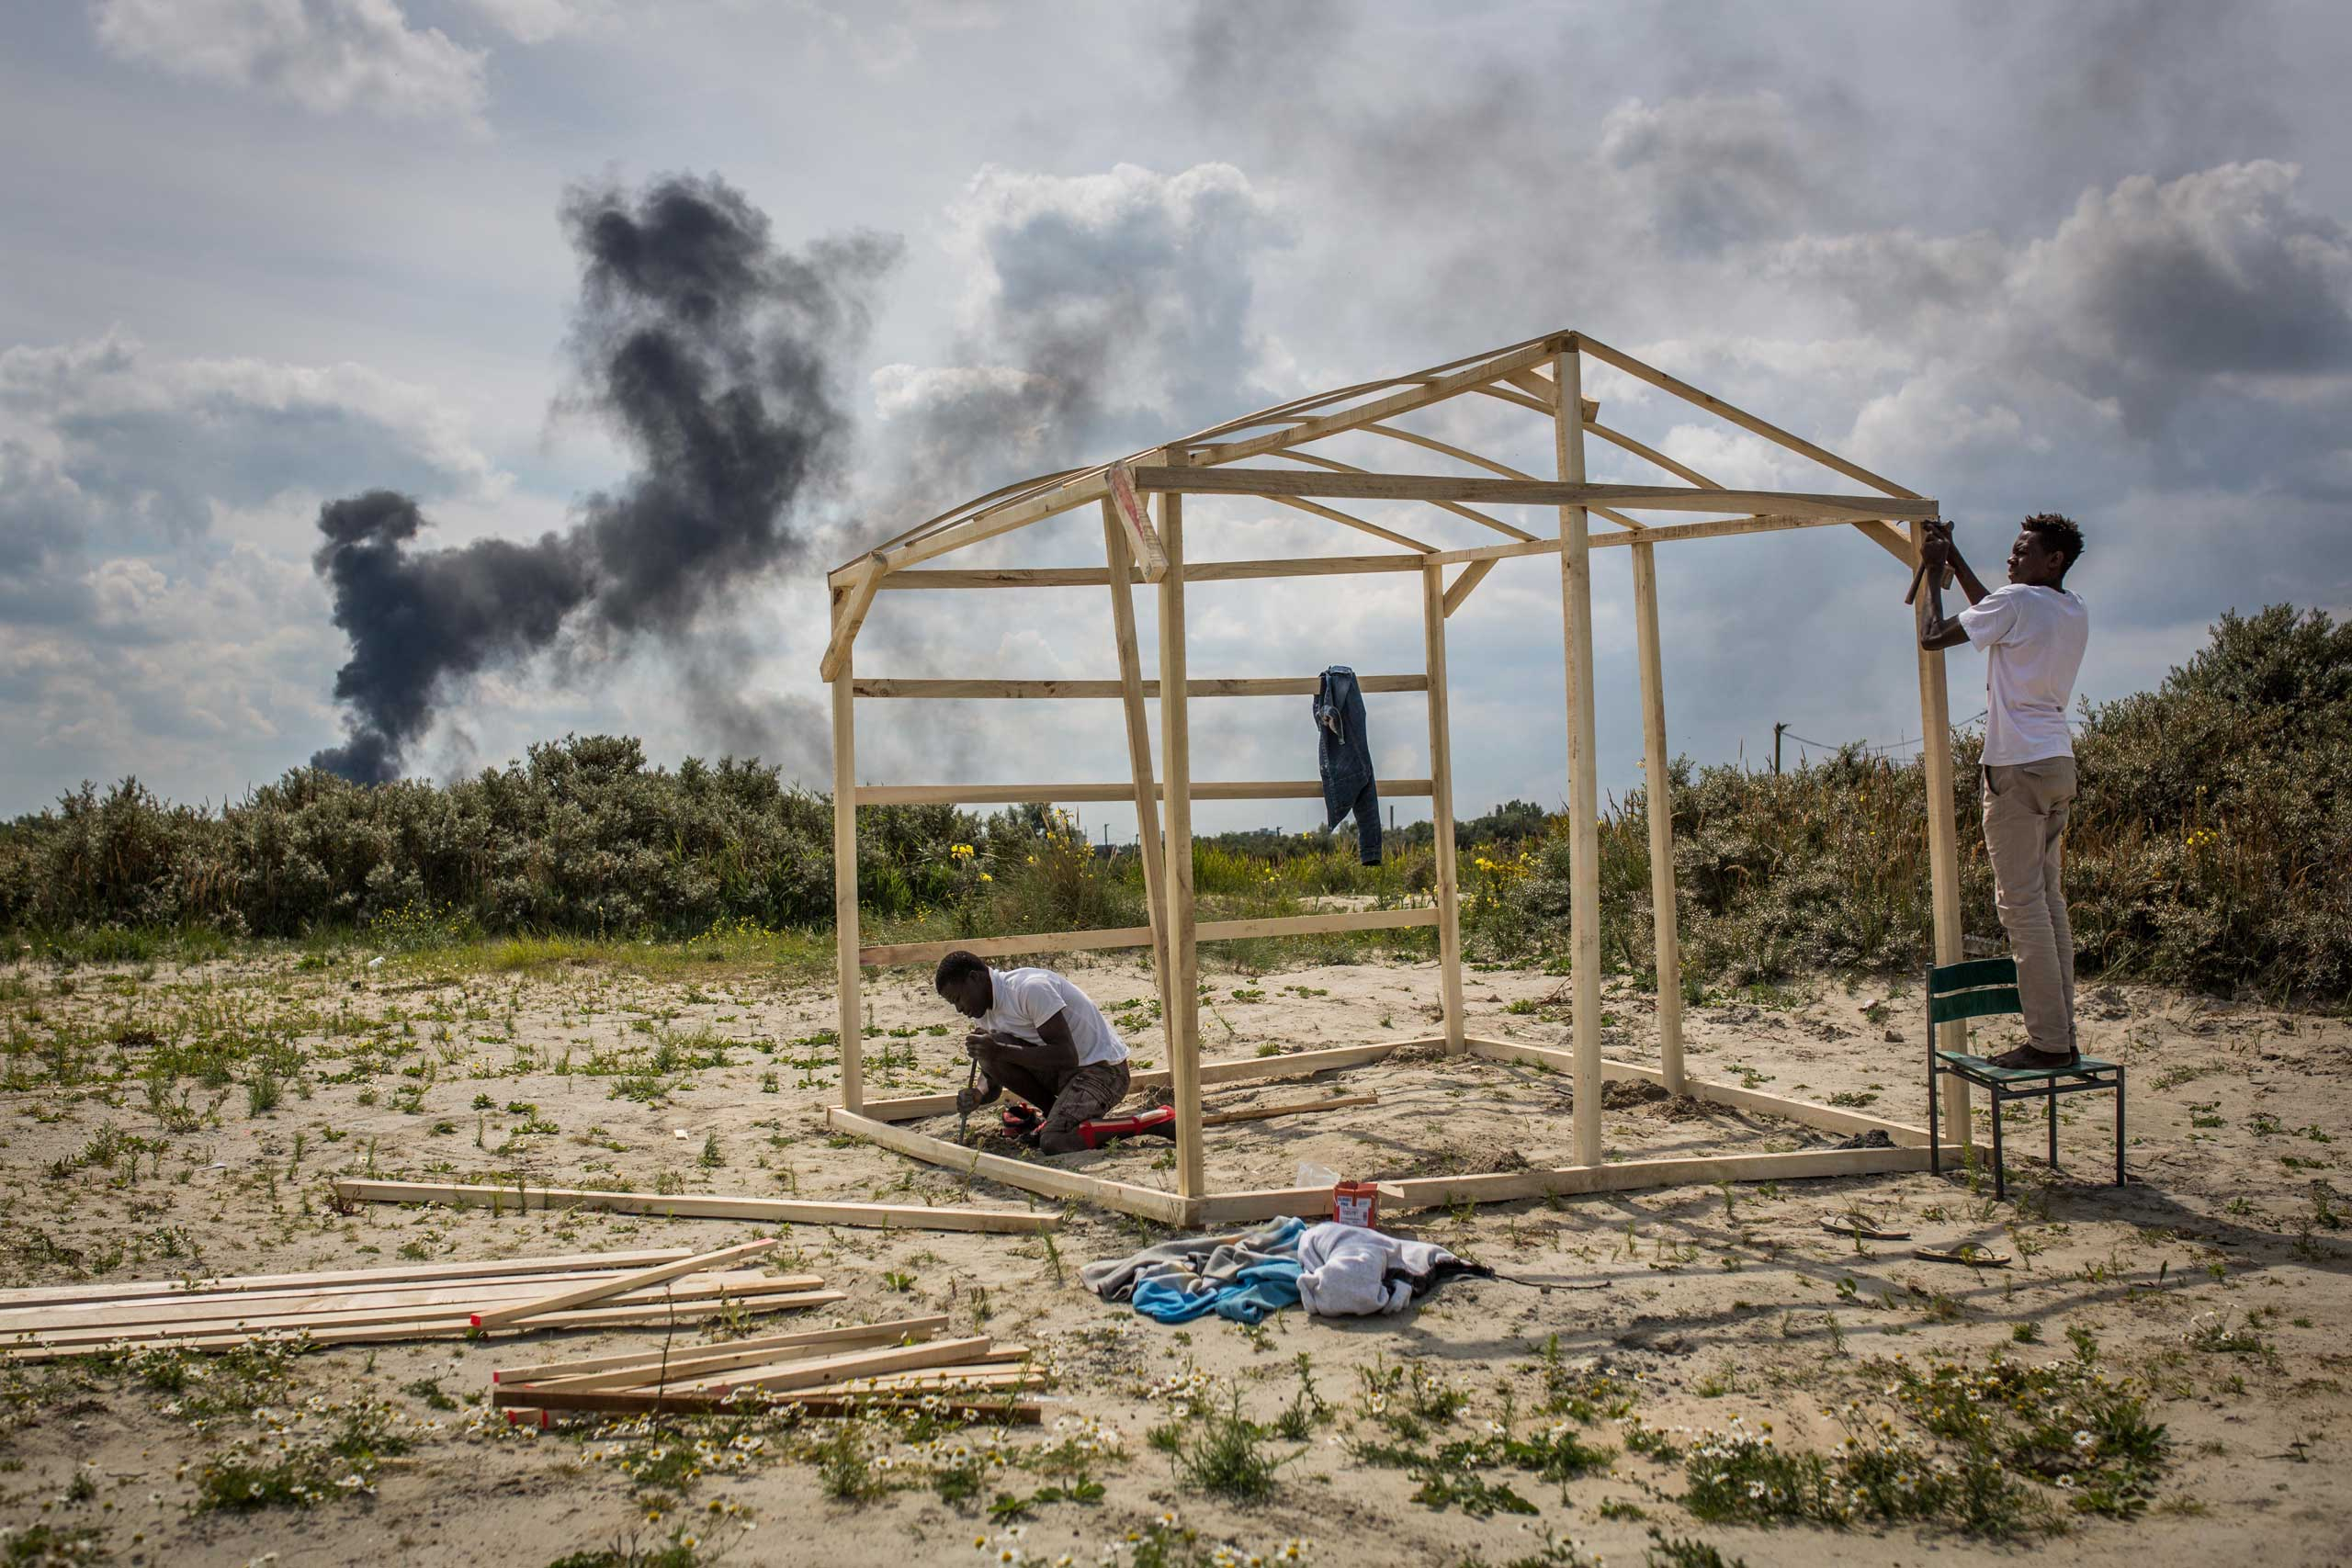 Gamal and Sabry from Sudan build a wooden structure at a make shift camp near the port of Calais, on July 31, 2015.